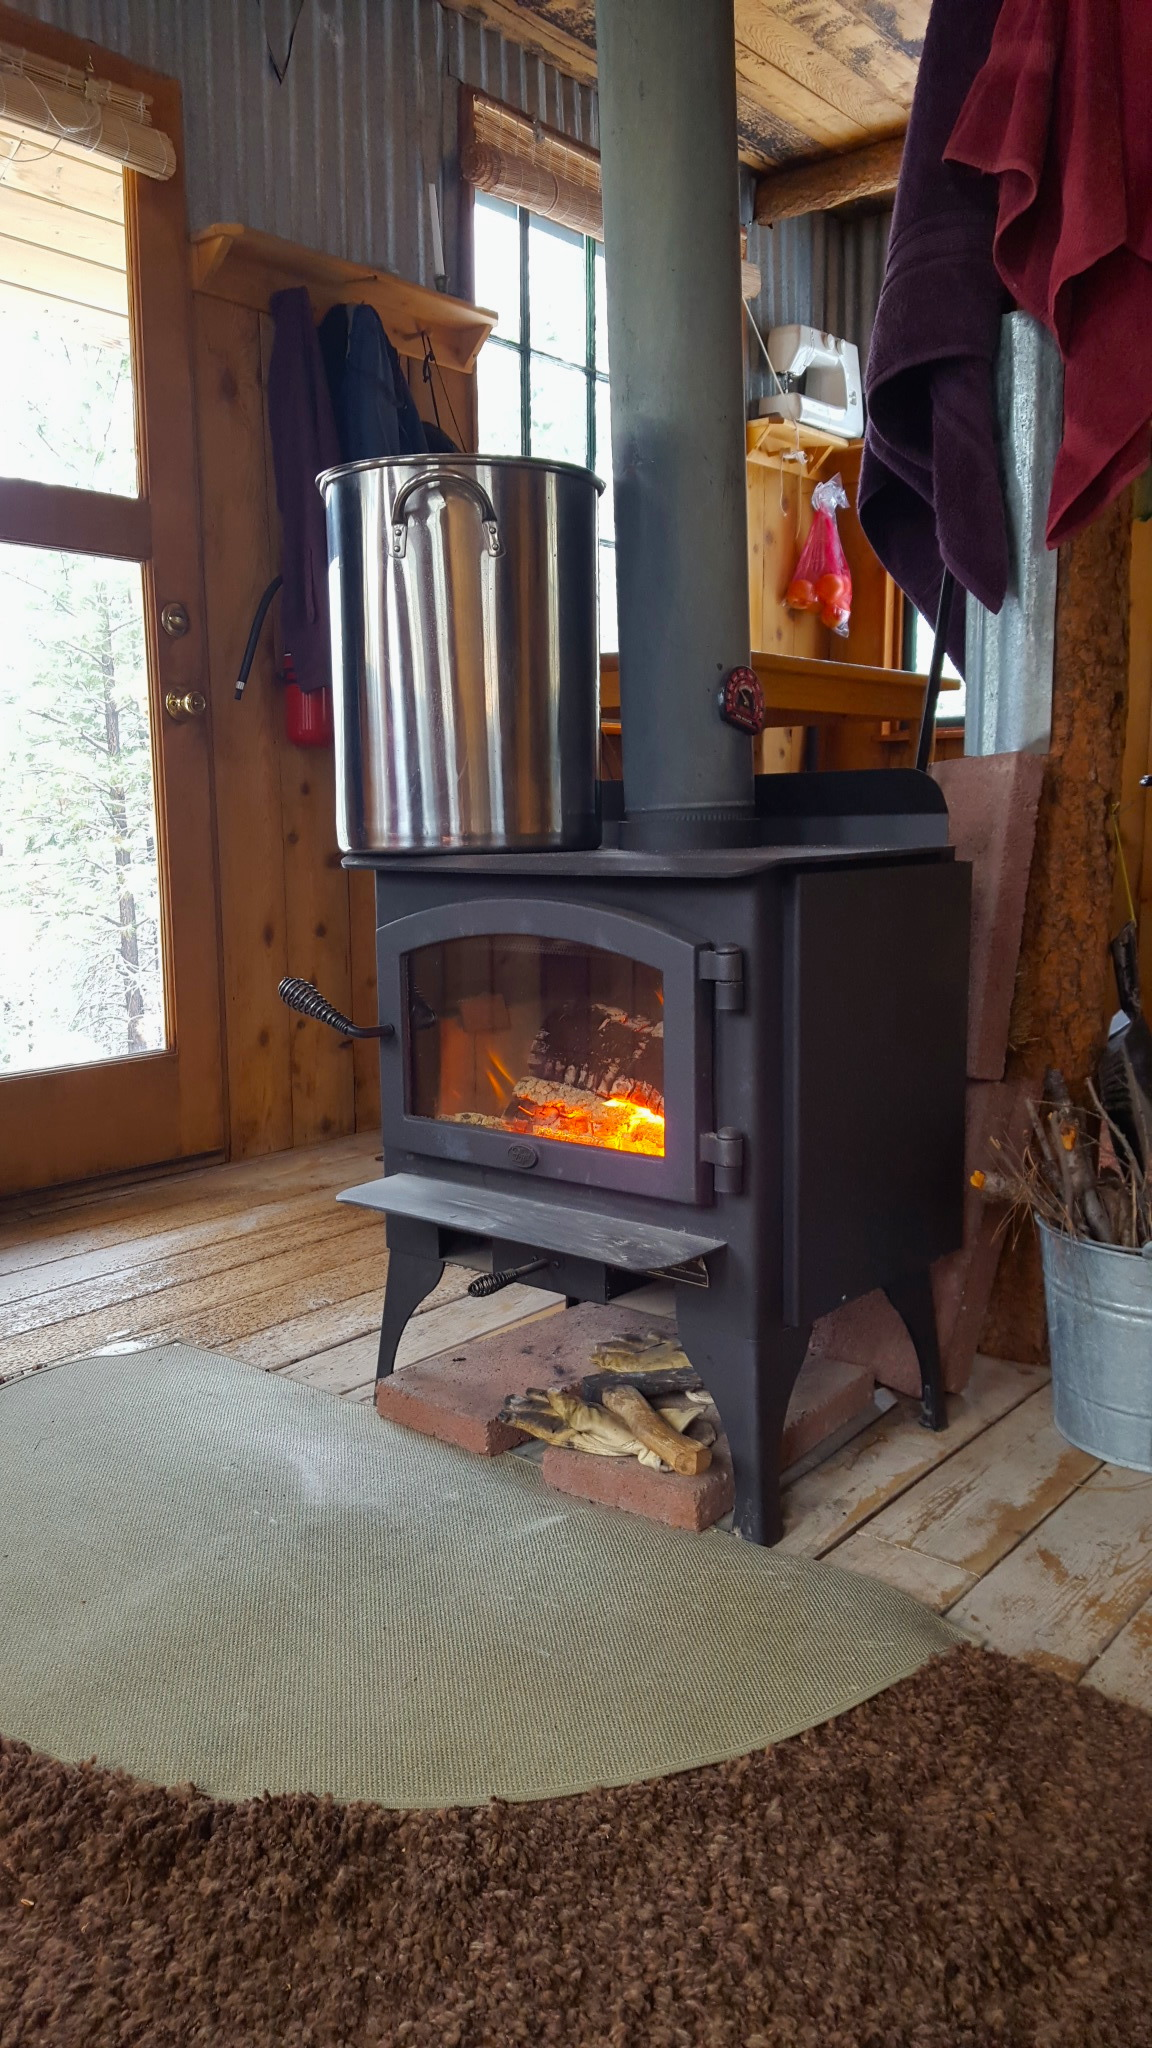 How To Clean The Glass Woodstove Door €  As The Crow Flies - Wood Stove Glass WB Designs